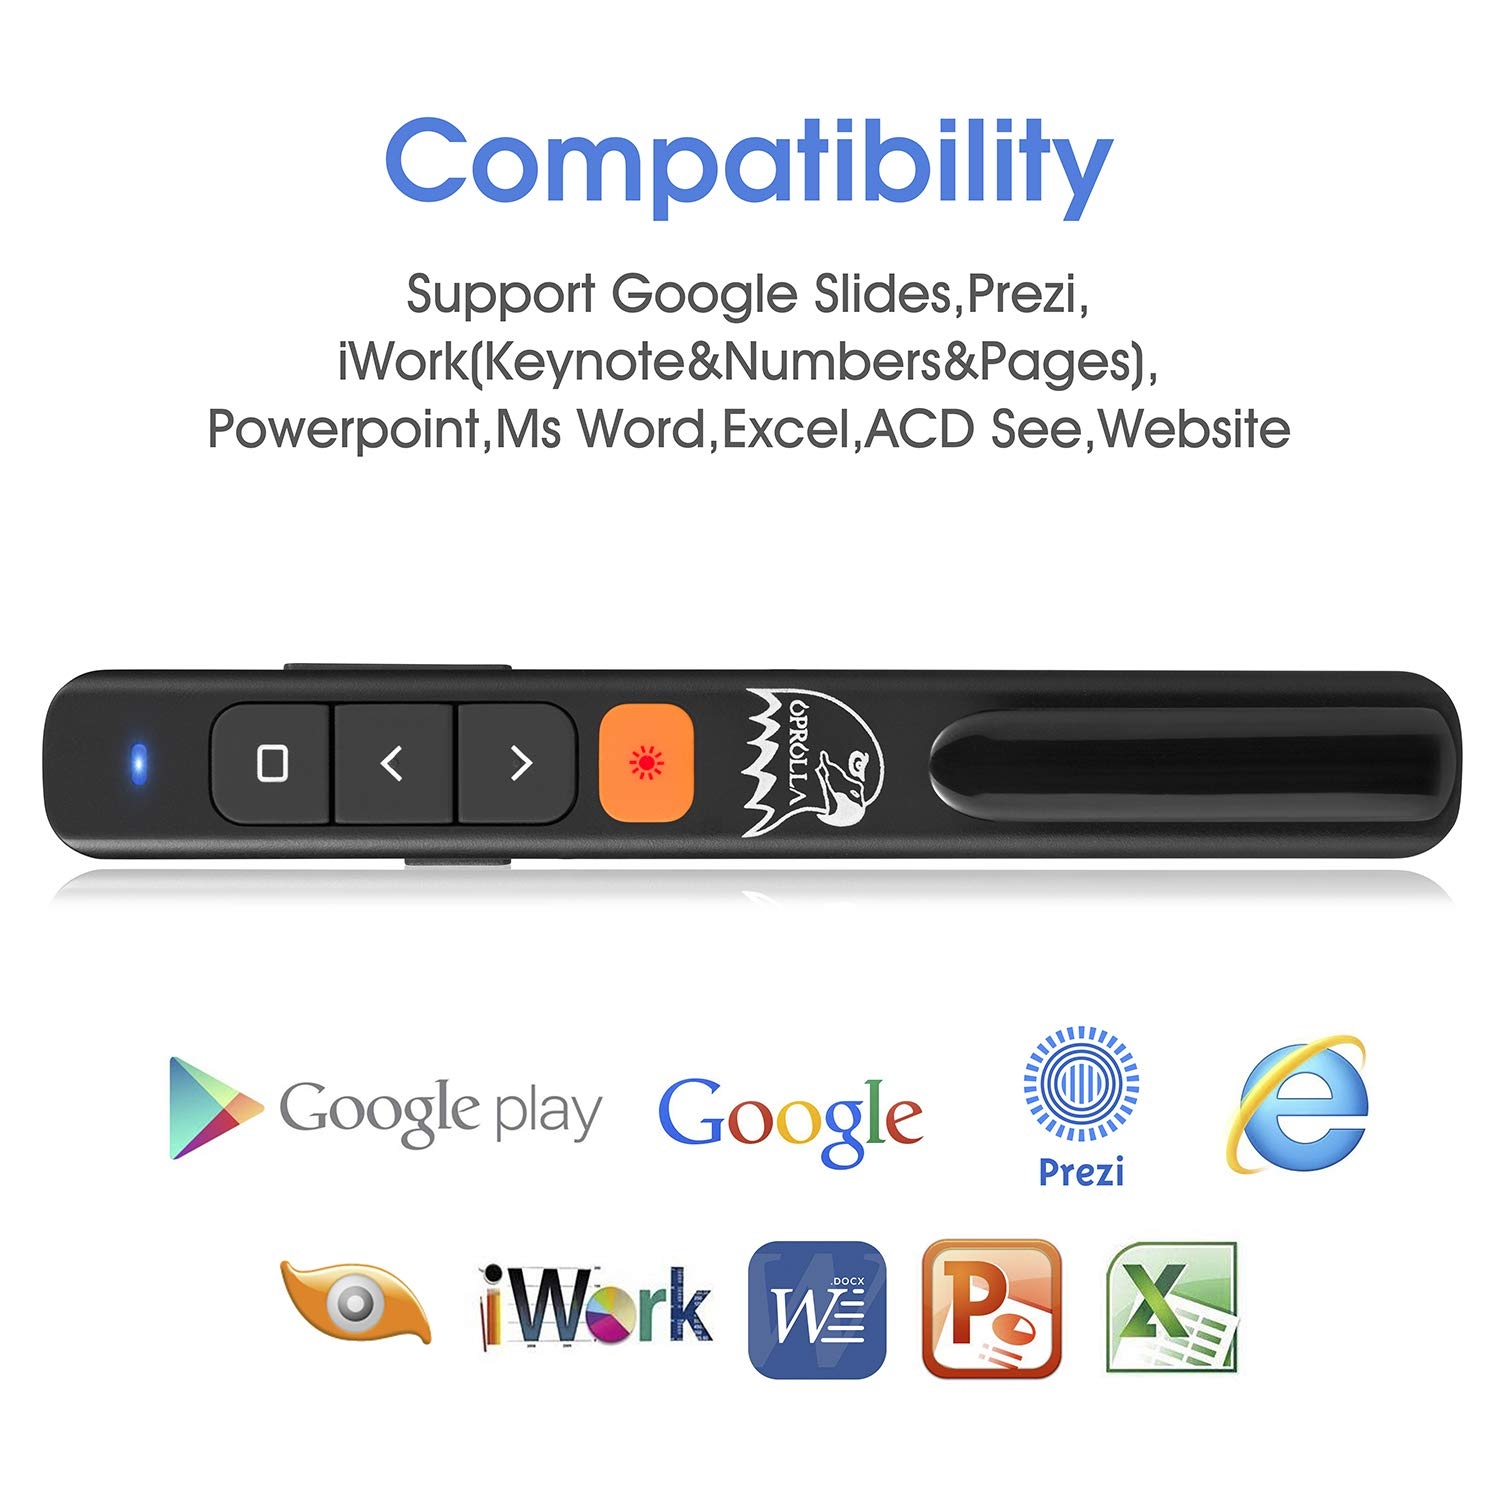 OPROLLA Wireless Presenter Hyperlink Multi-Media Volumn Control RF 2.4GHZ Powerpoint Clicker Slide Advancer Presentation Remote Clicker for Mac,Laptop (Powerpoint Clicker-Black 1200mah Li)